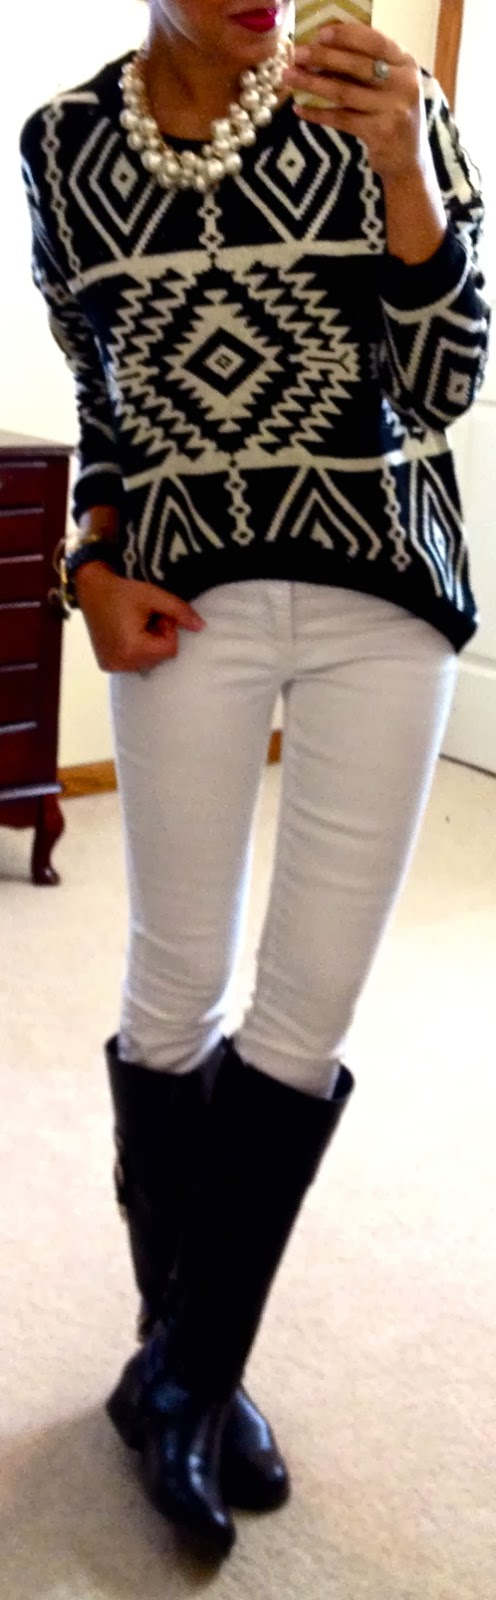 Aztec print sweater, white skinny jeans, boots & pearls.